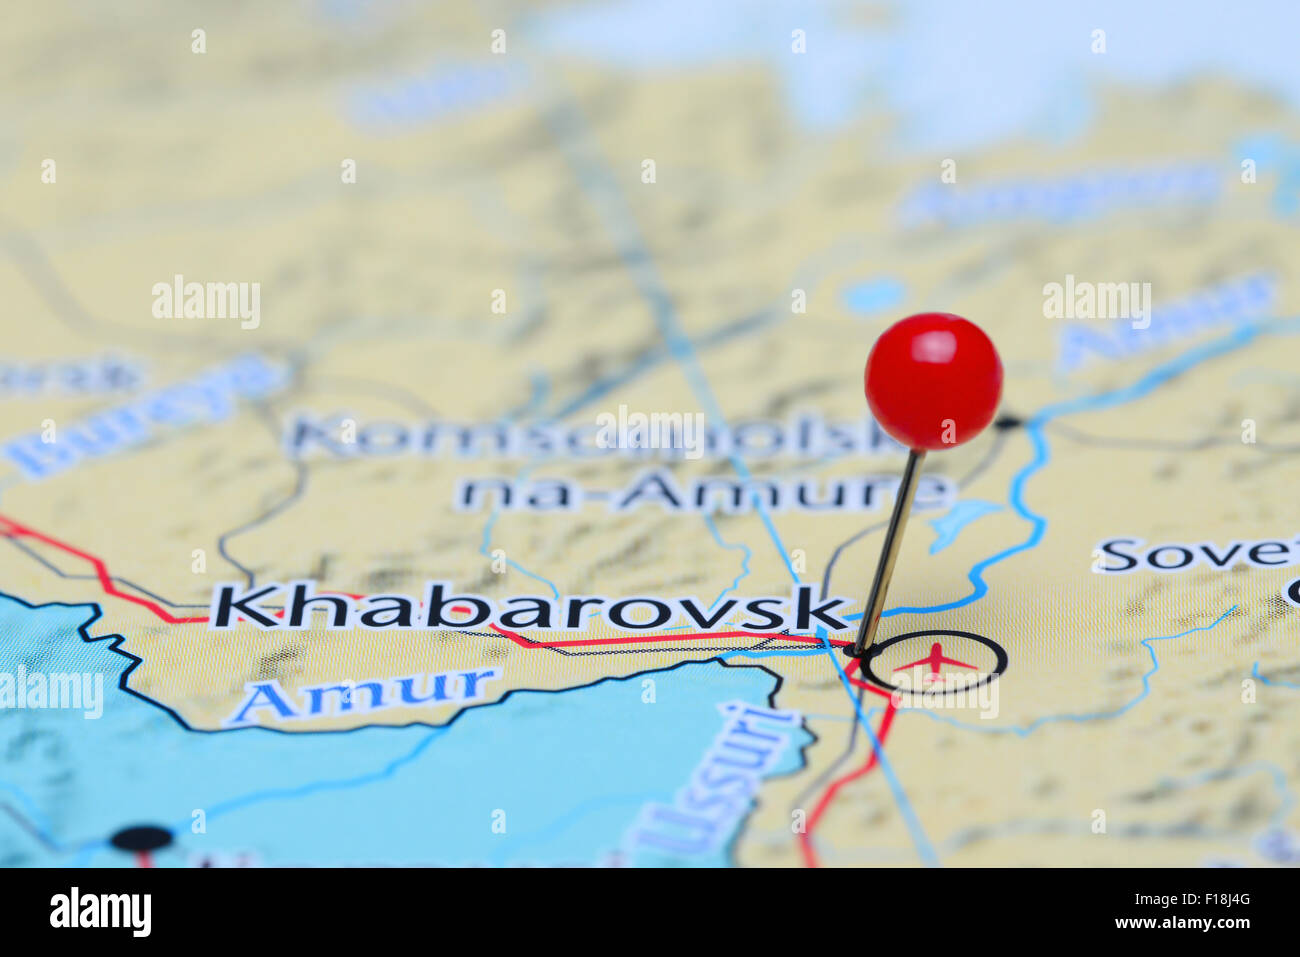 Khabarovsk pinned on a map of Asia - Stock Image